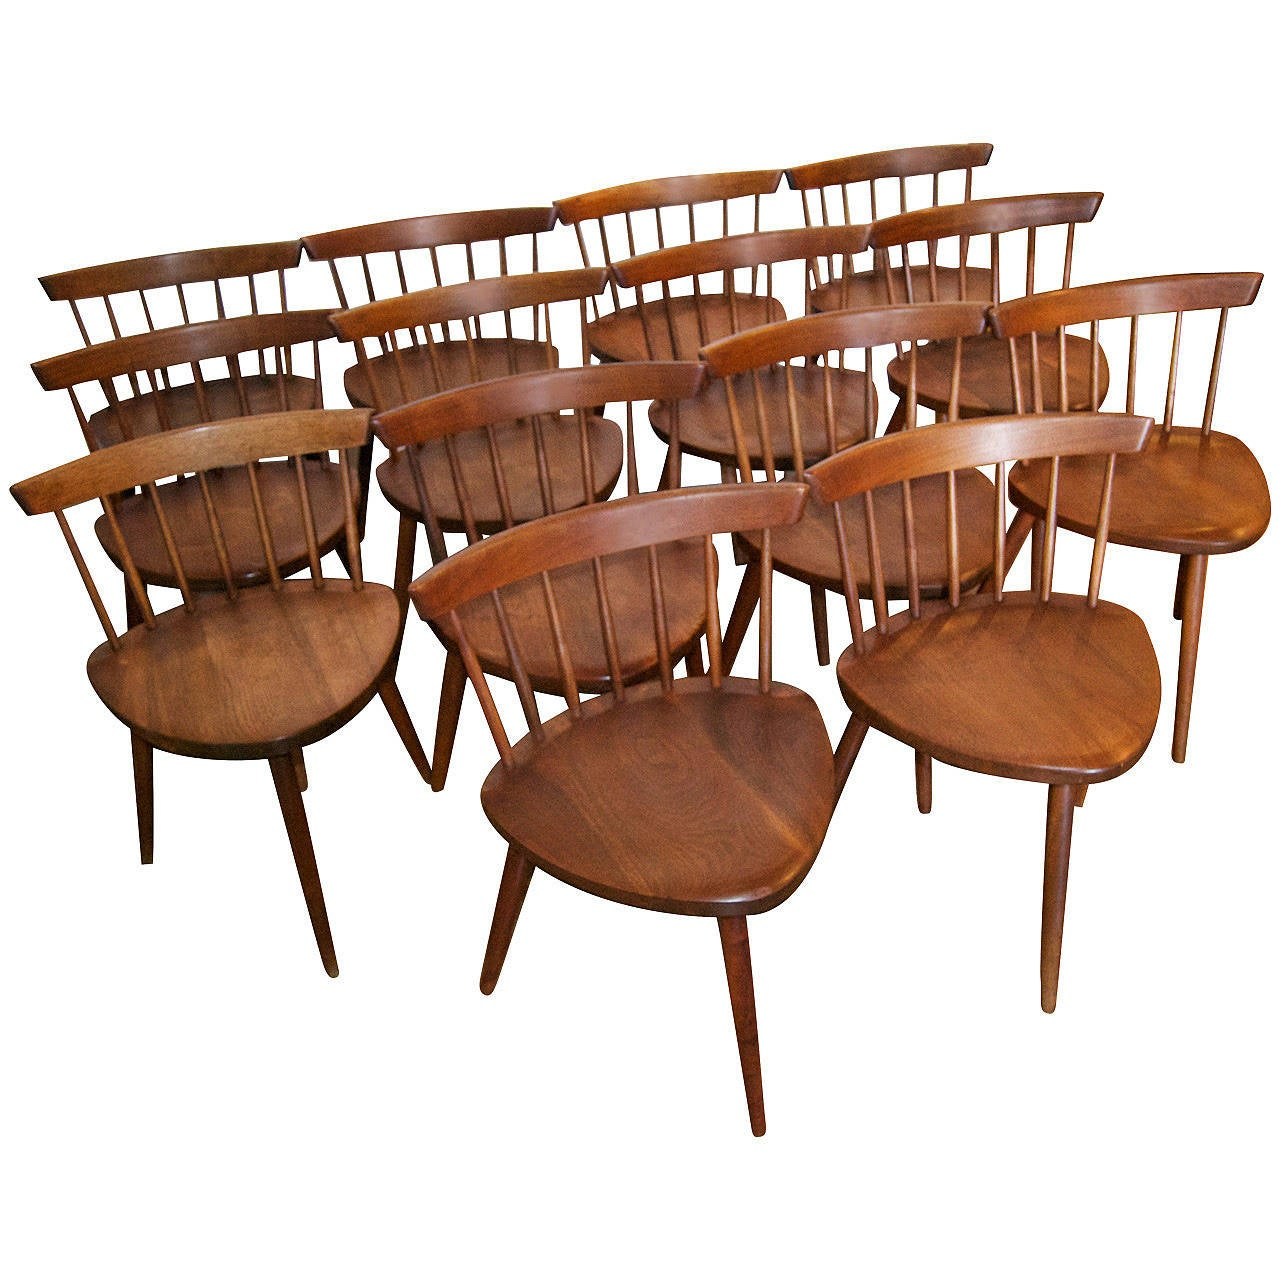 "George Nakashima ""Mira"" Chairs Set of 14 For Sale at 1stdibs"